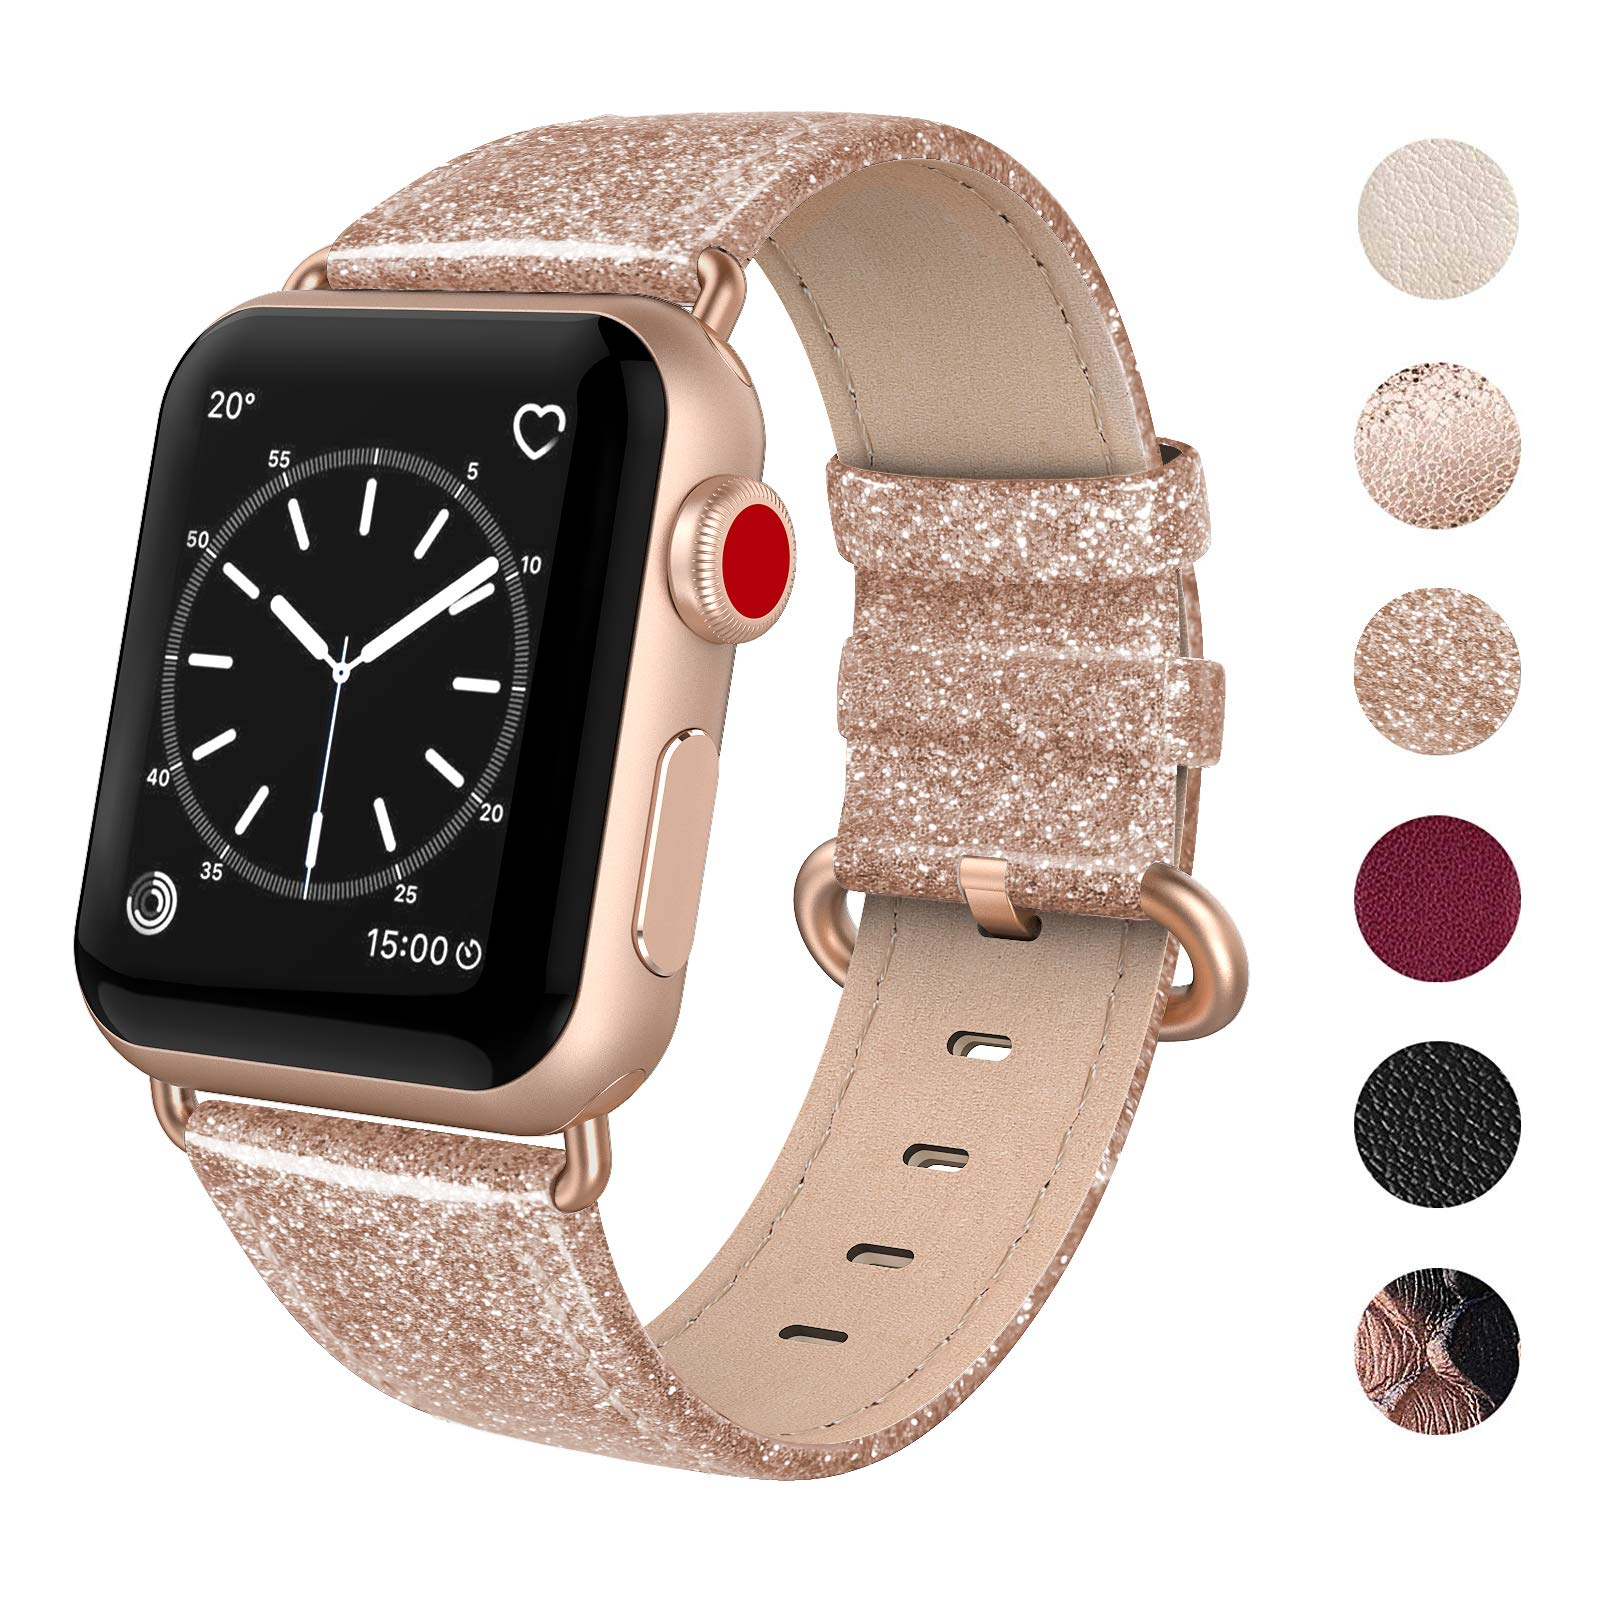 SWEES Leather Band Compatible for Apple Watch 38mm 40mm, Genuine Leather Shiny Bling Glitter Strap Compatible iWatch Series 4 Series 3 Series 2 Series 1, Sports & Edition Women, Glistening Rose Gold by SWEES